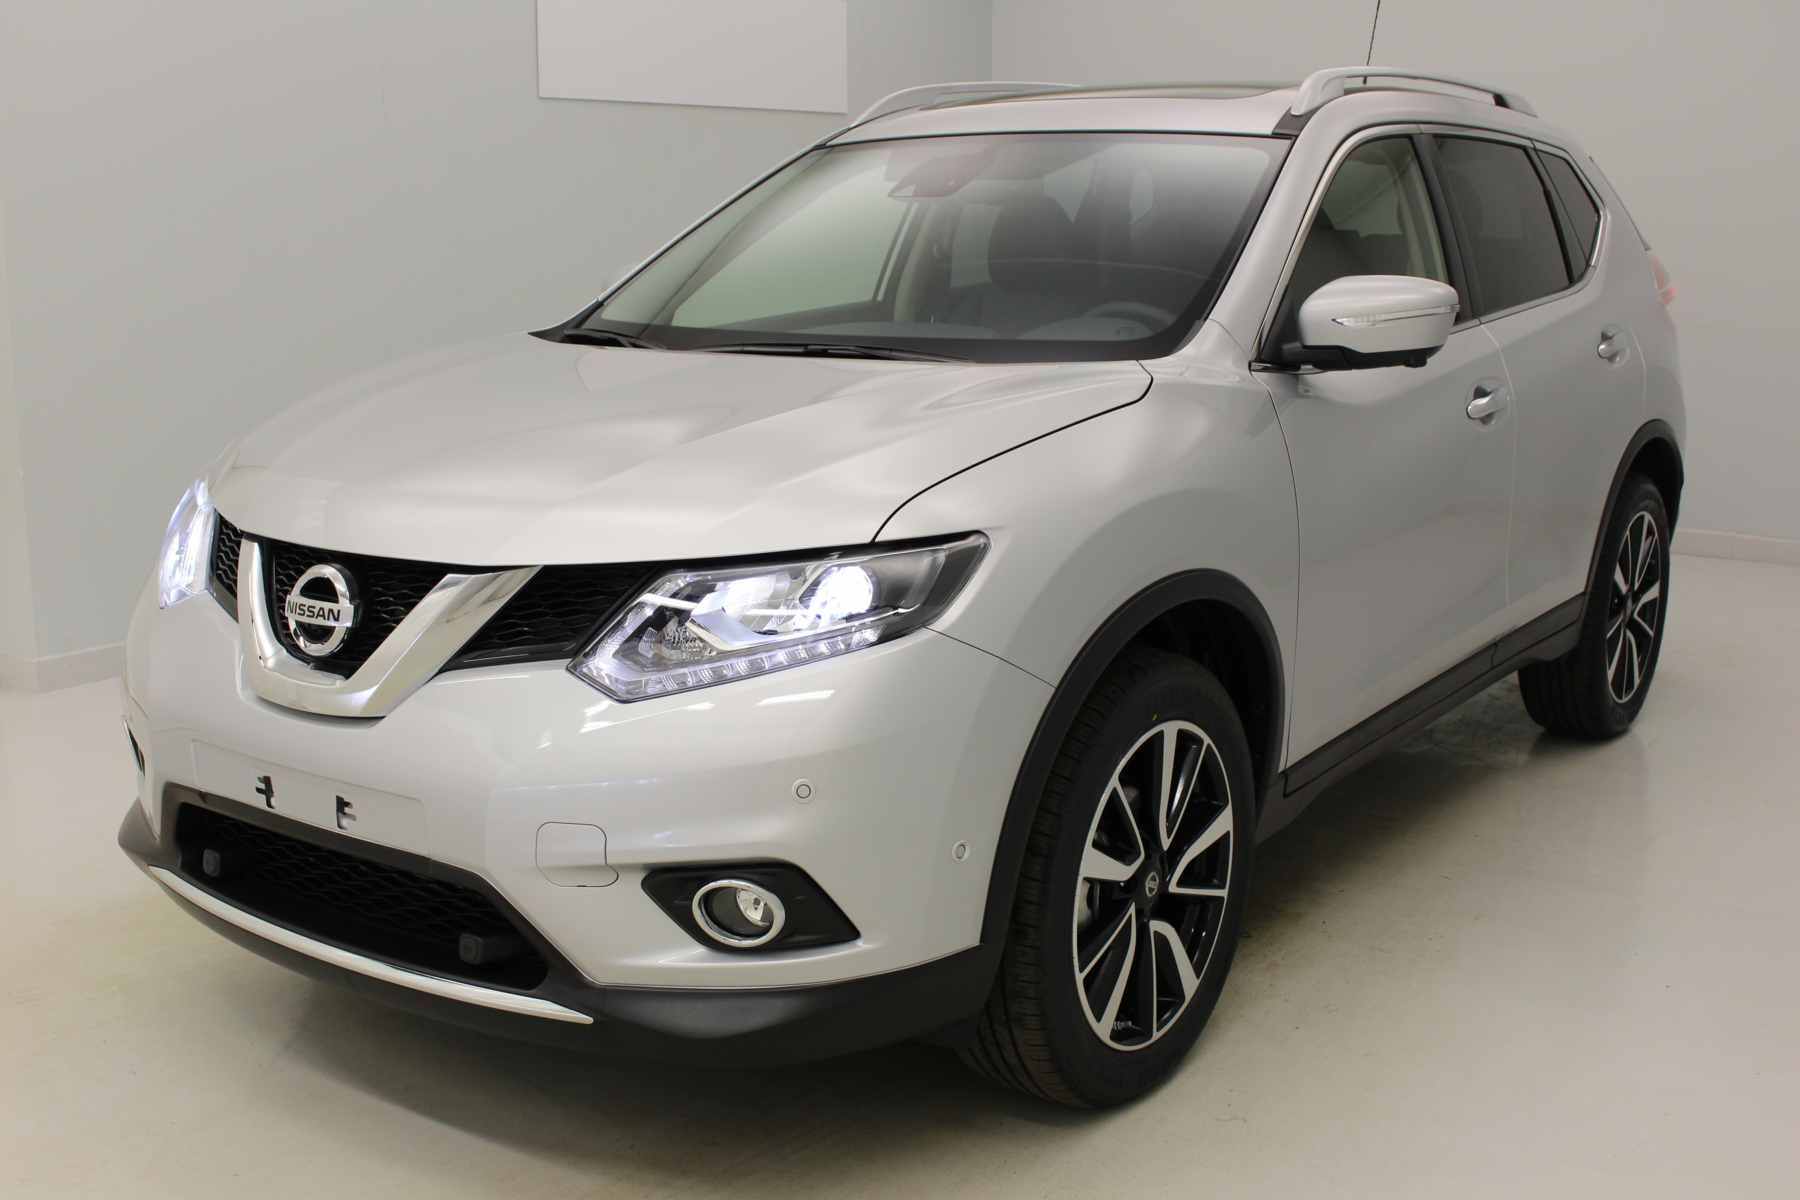 NISSAN X-Trail 1.6 dCi 130 Euro 6 7pl All-Mode 4x4-i Tekna Gris Argent avec options